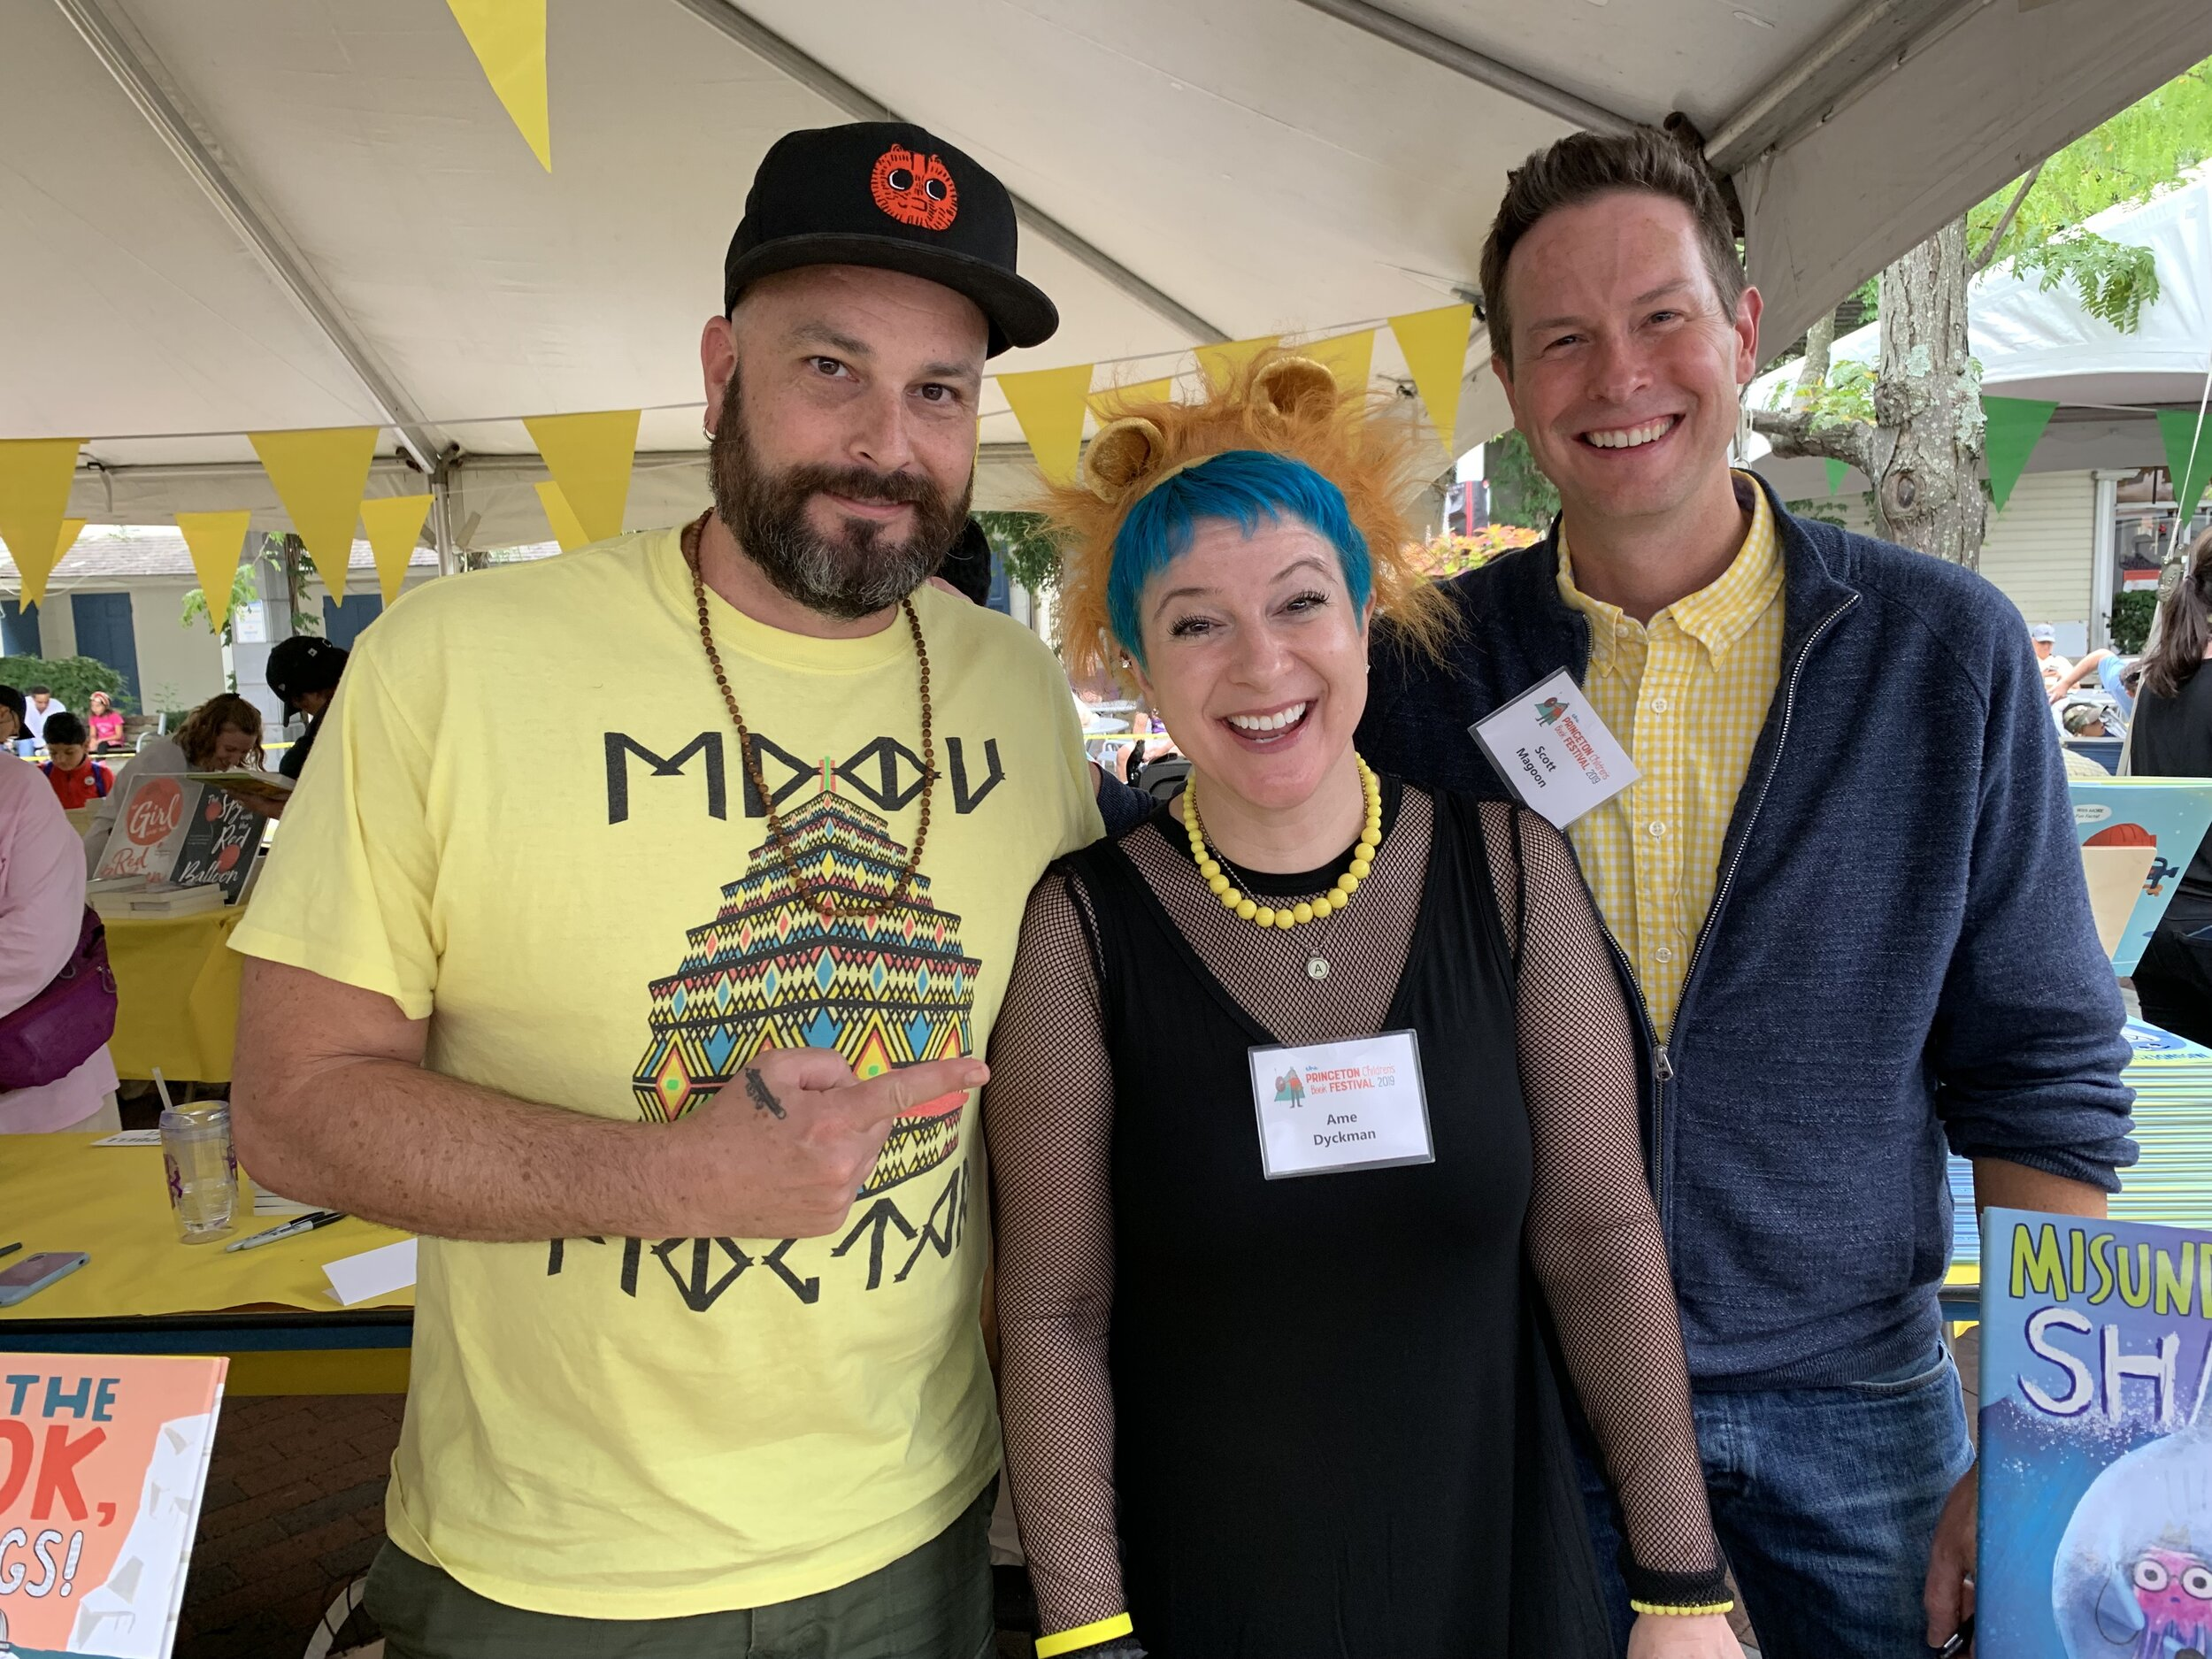 Zach O'Hora, Ame Dyckman & me at the end of the Princeton Children's Book Festival. Yes, we had a blast in our corner of the fest and no, we did not purposefully color coordinate! What a special way to end the LINUS Headliner Tour.